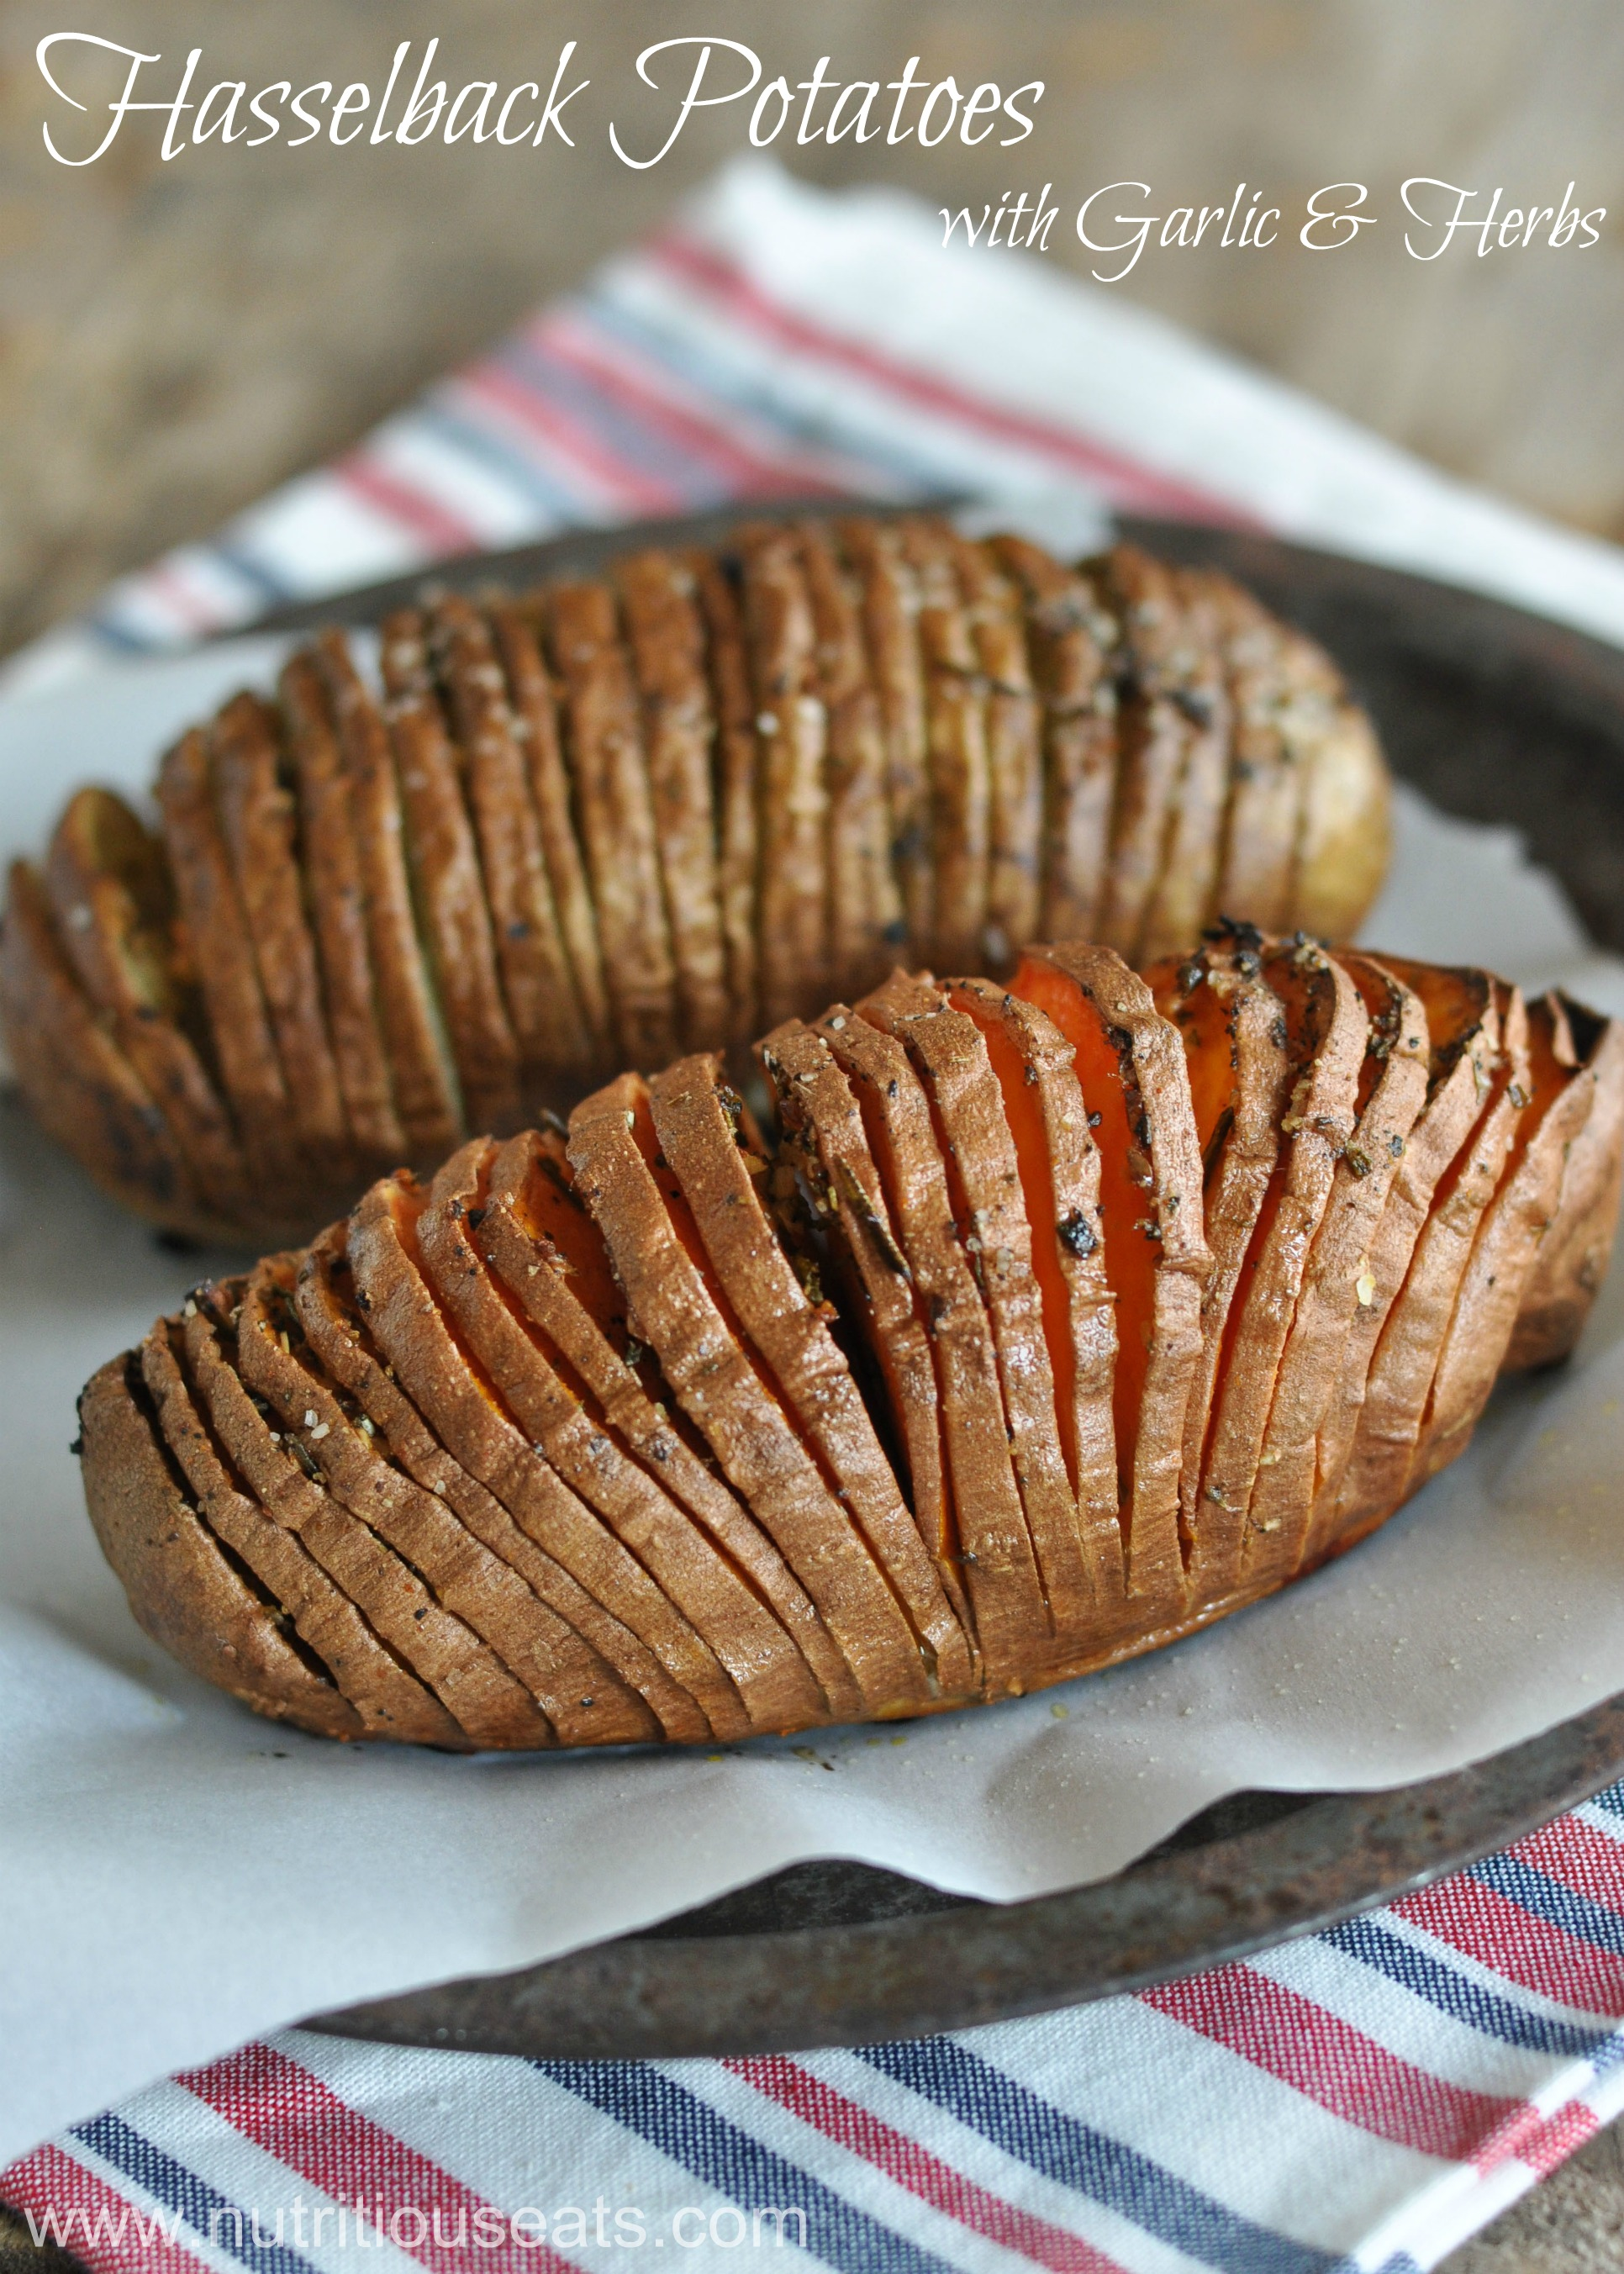 Hasselback Potatoes | www.nutritiouseats.com